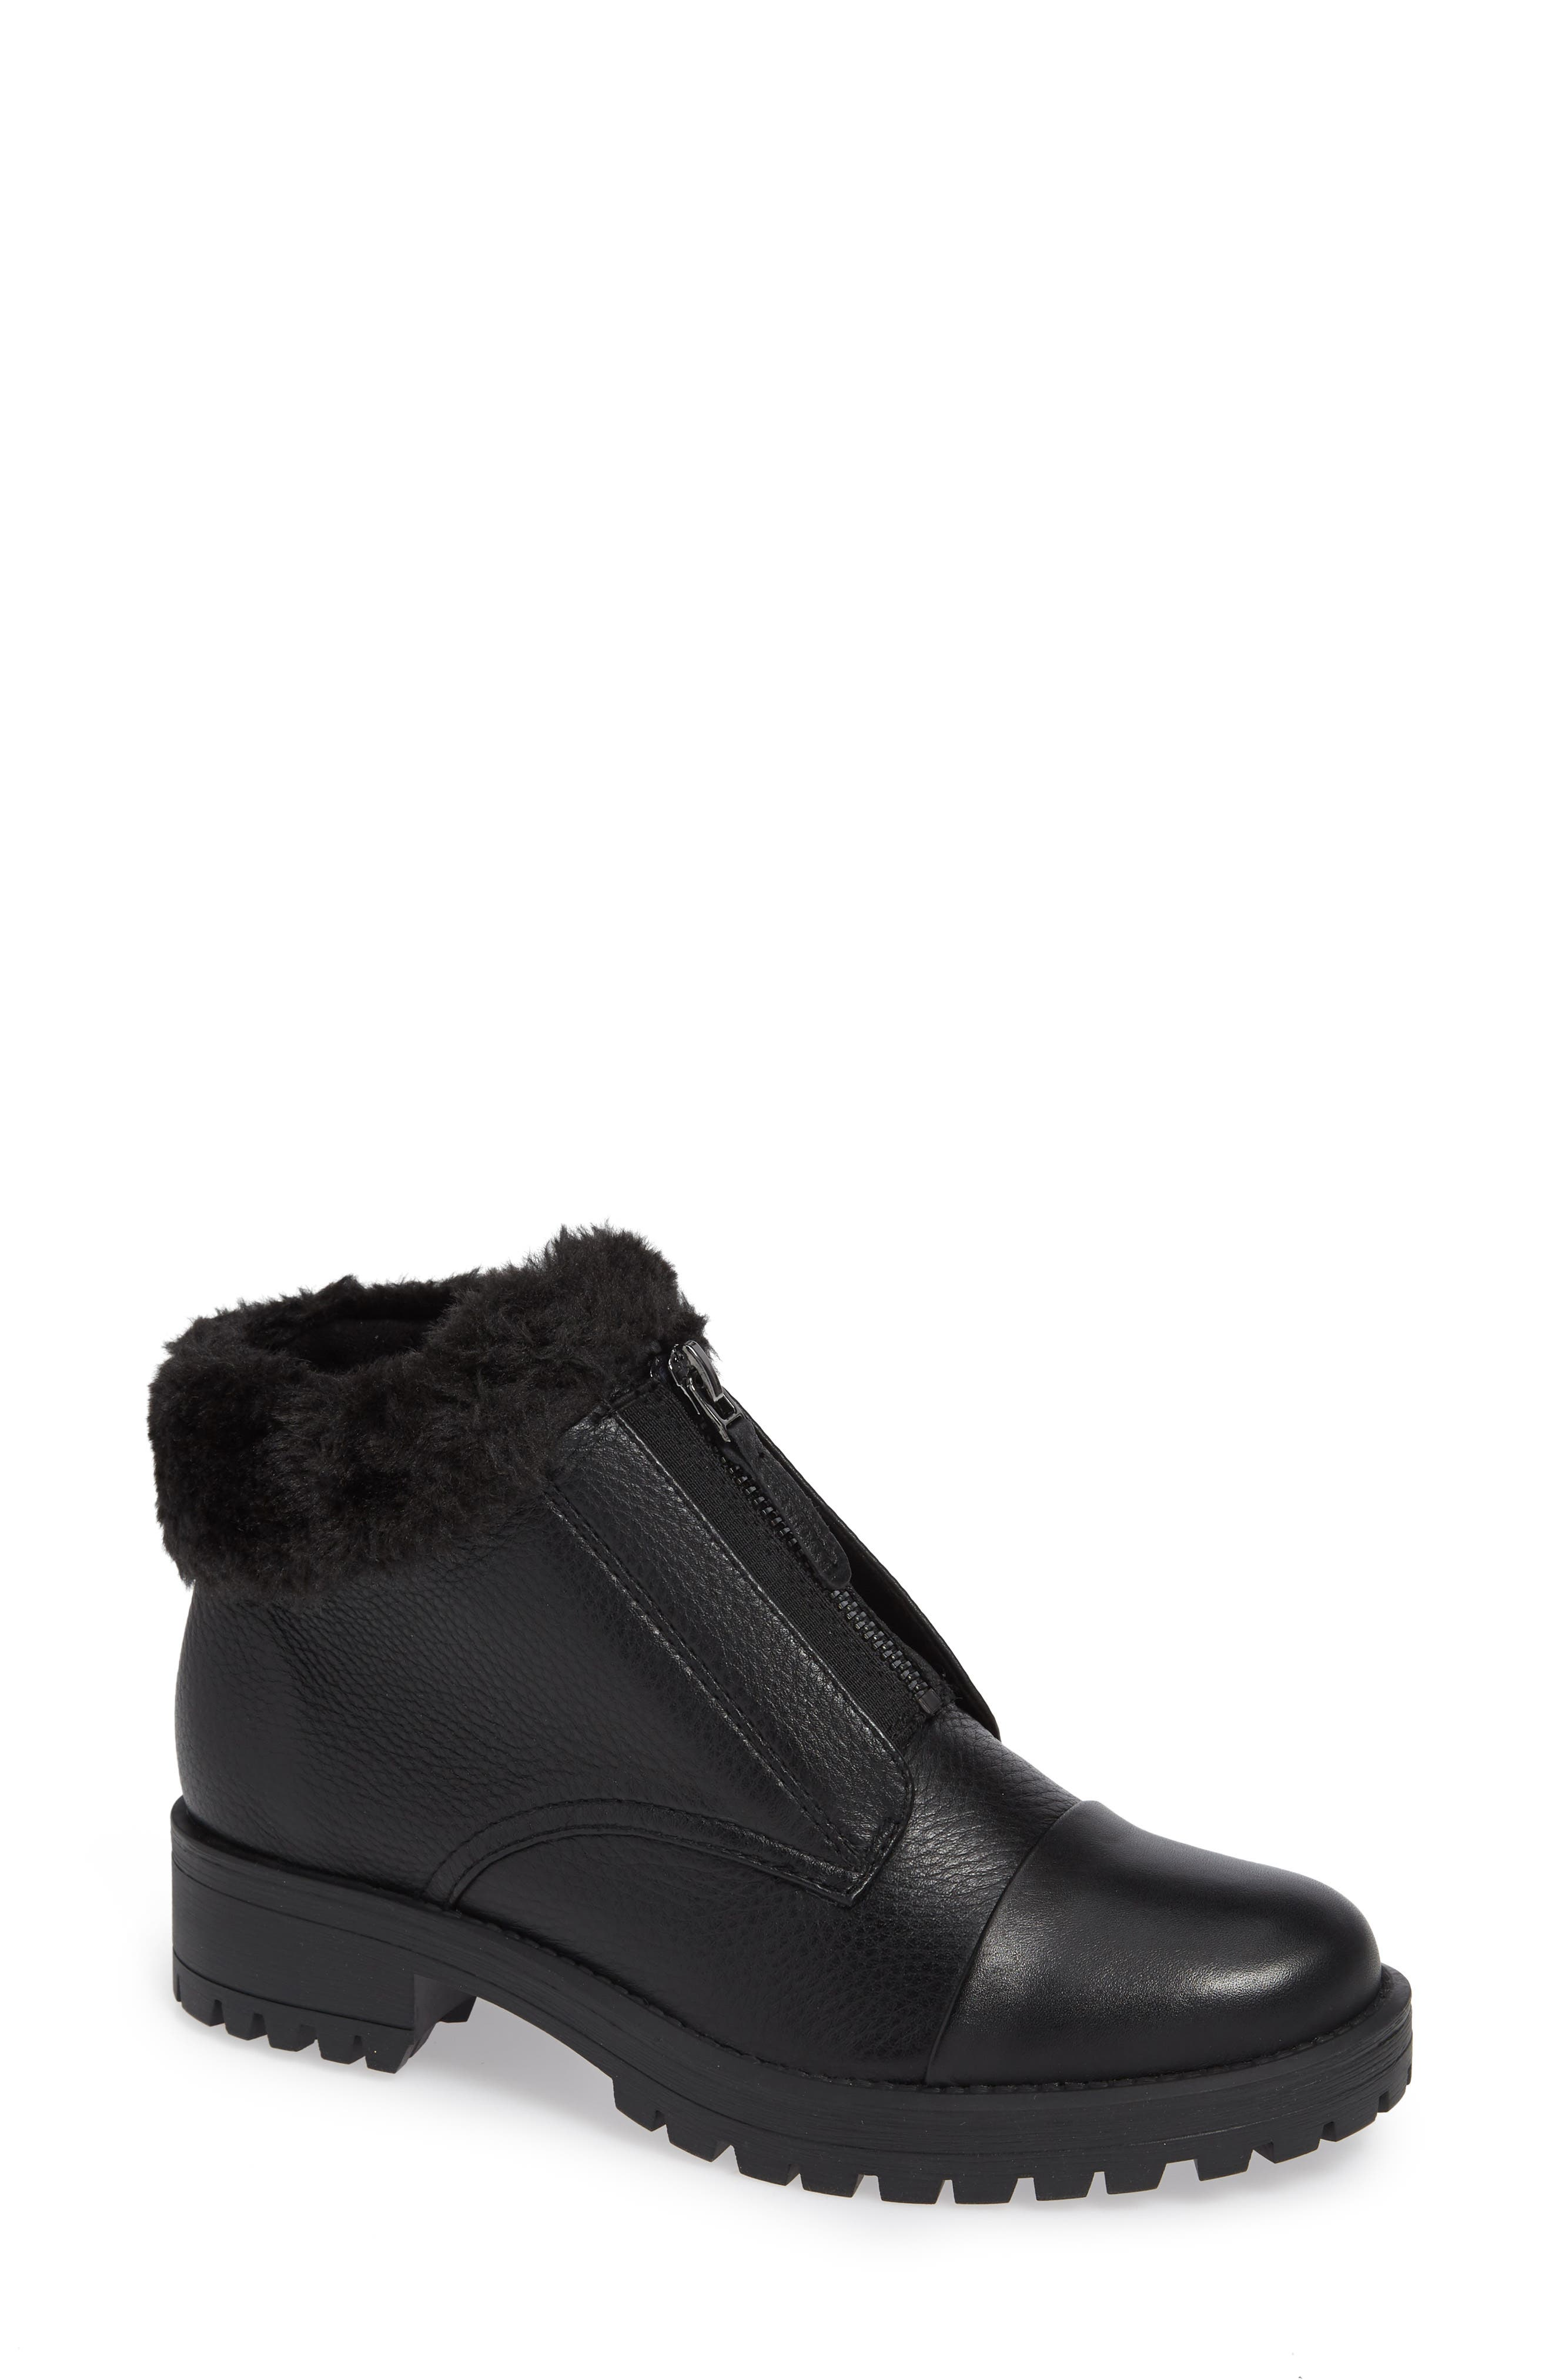 SUDINI Yesnia Bootie, Main, color, 001